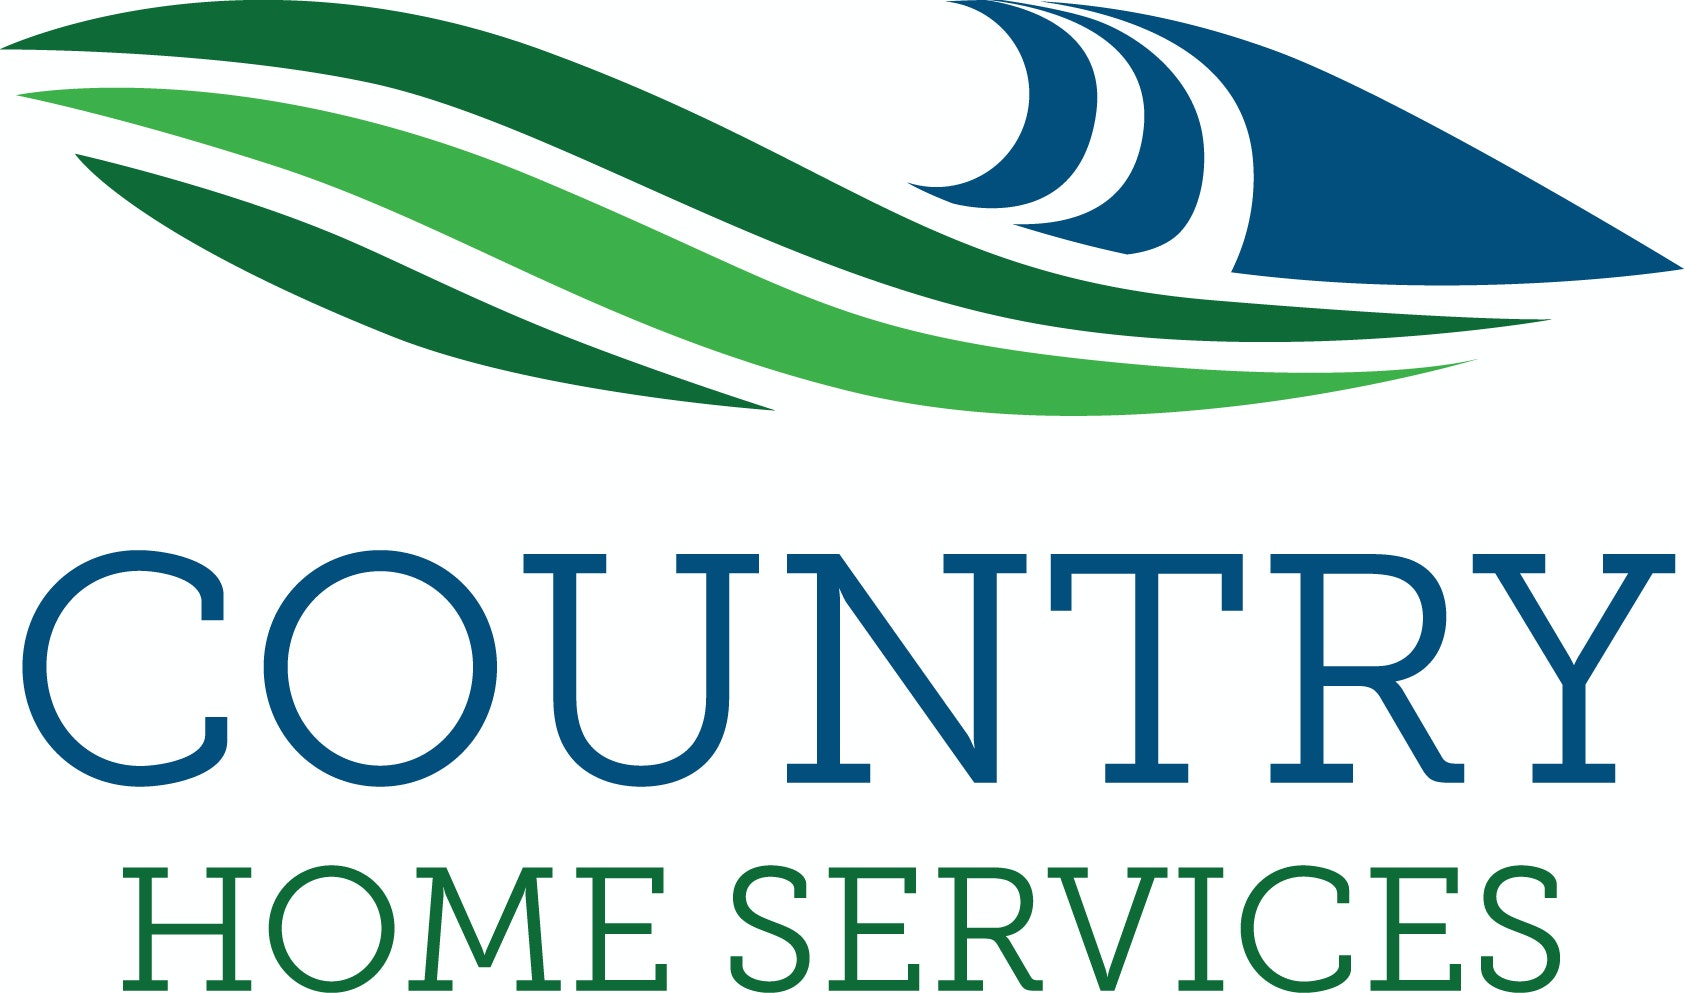 Country Home Services Yorke Peninsula, Lower North, Barossa & Gawler logo